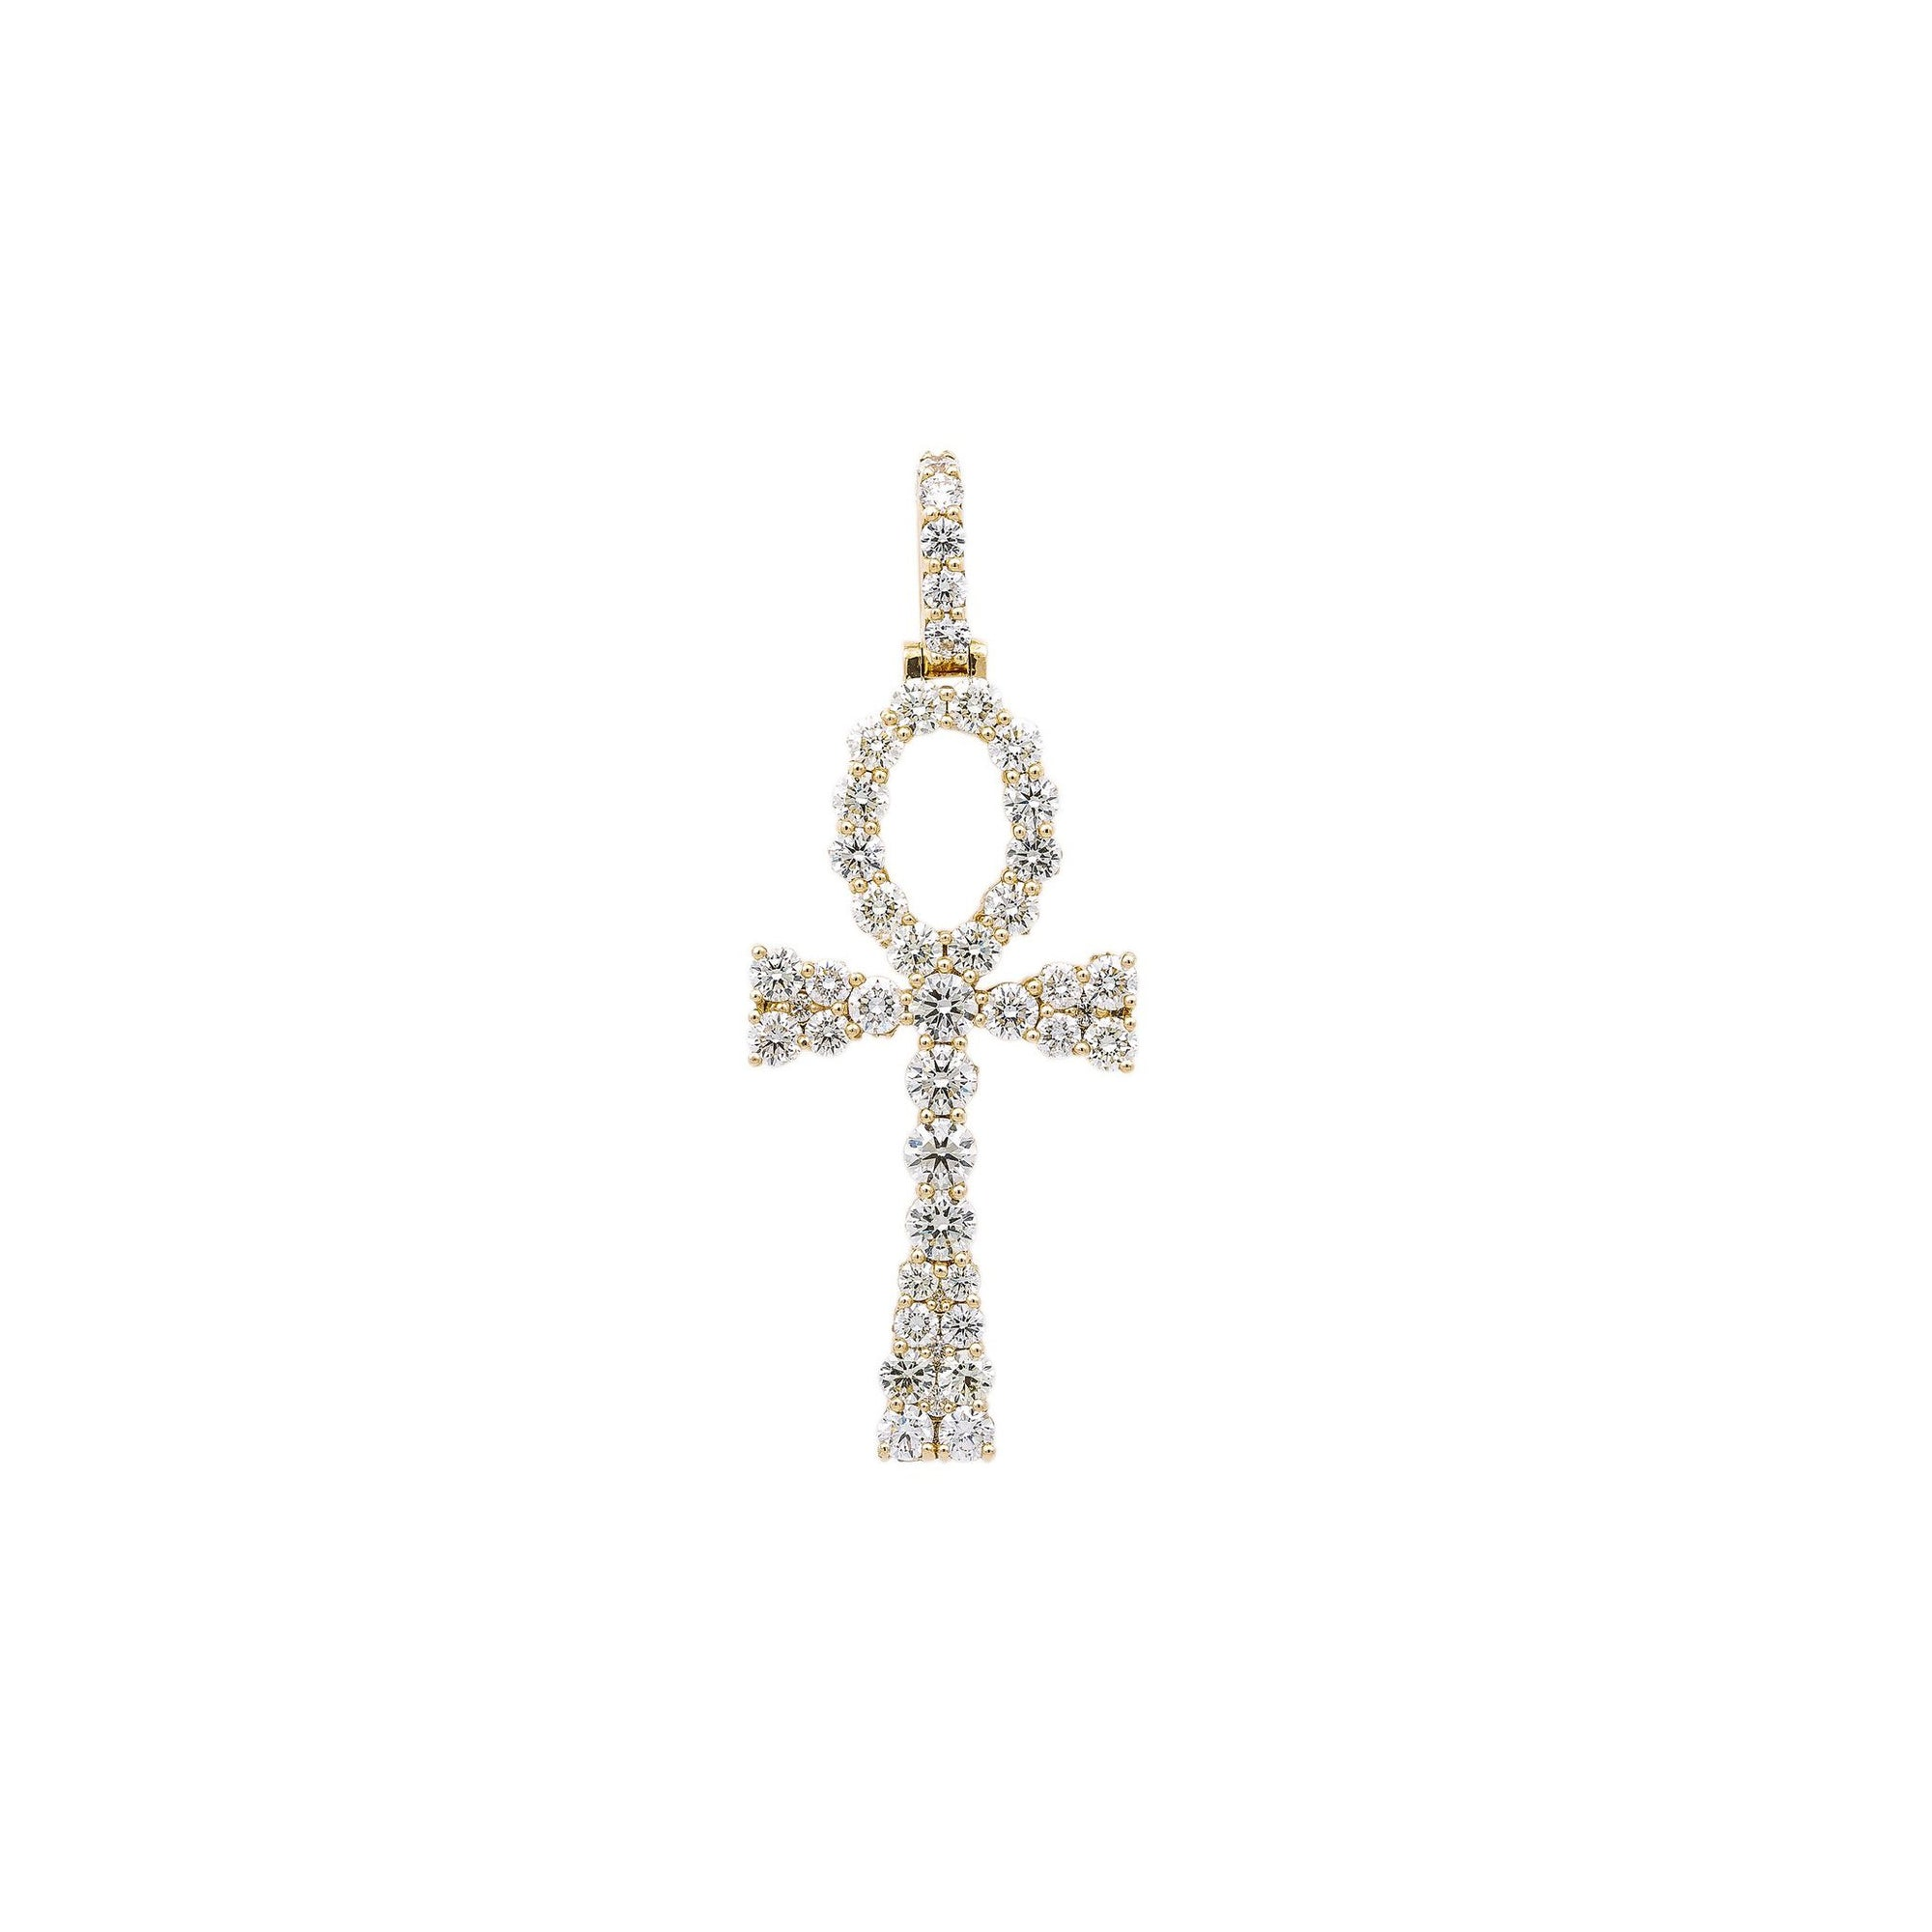 Unisex 14K Yellow Gold Pendant with 7.50 CT Diamonds